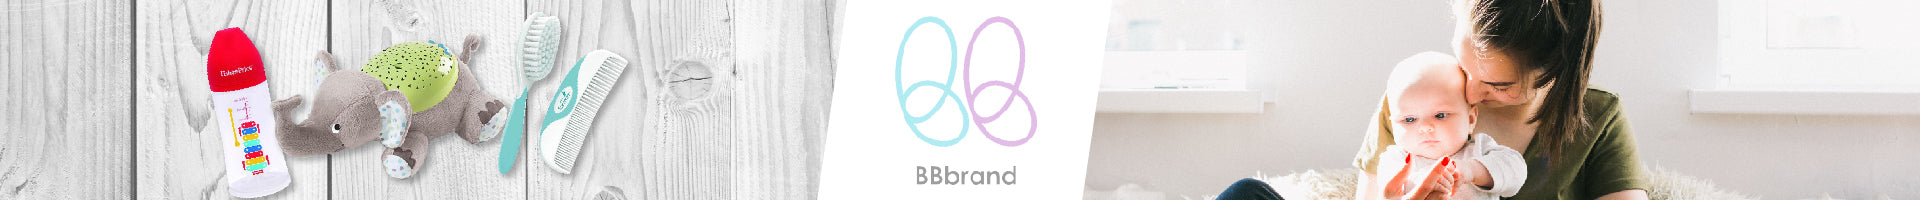 BBbrand